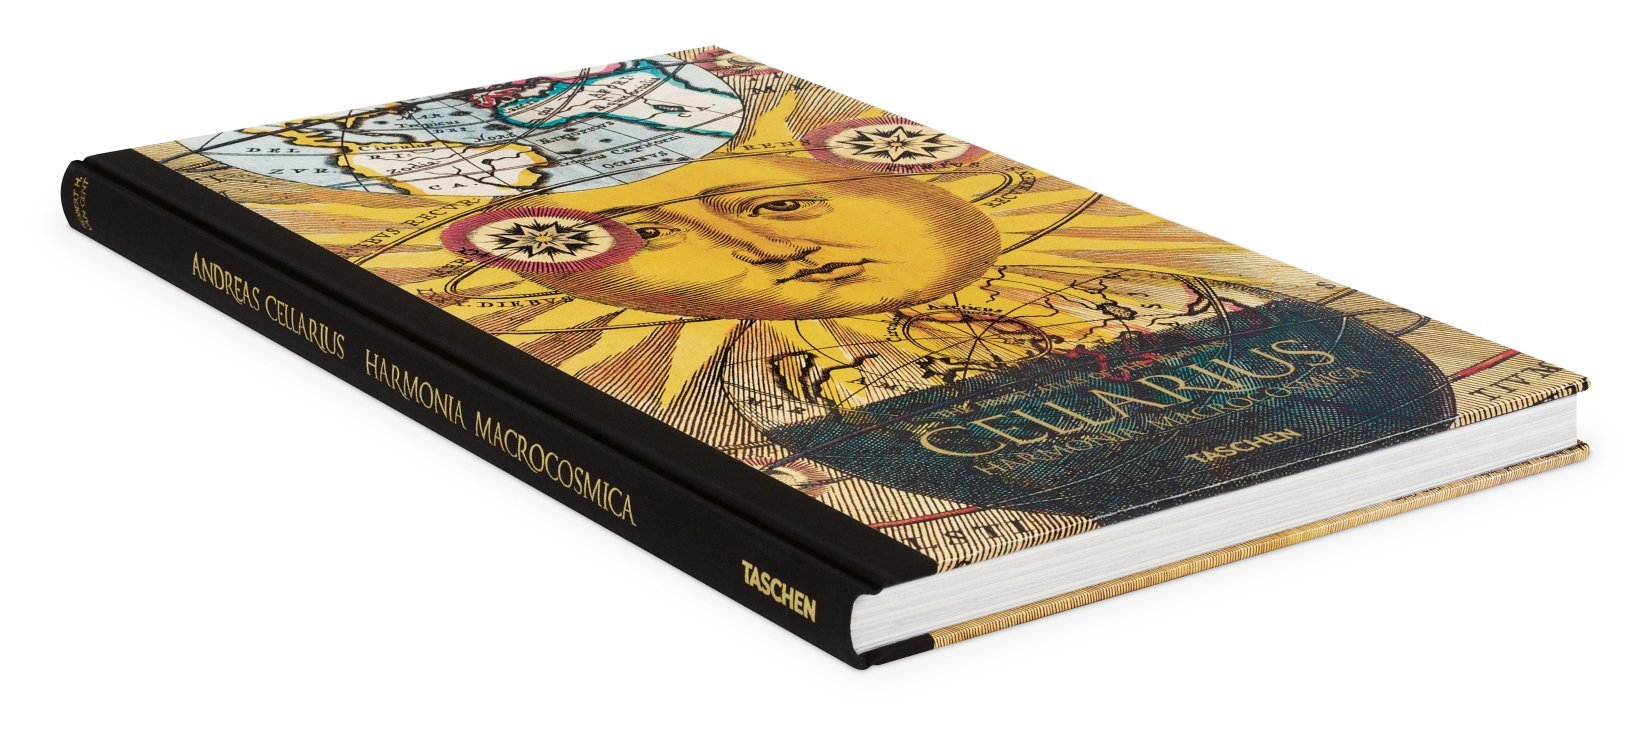 Cellarius  Harmonia Macrocosmica - Not available - TASCHEN Books